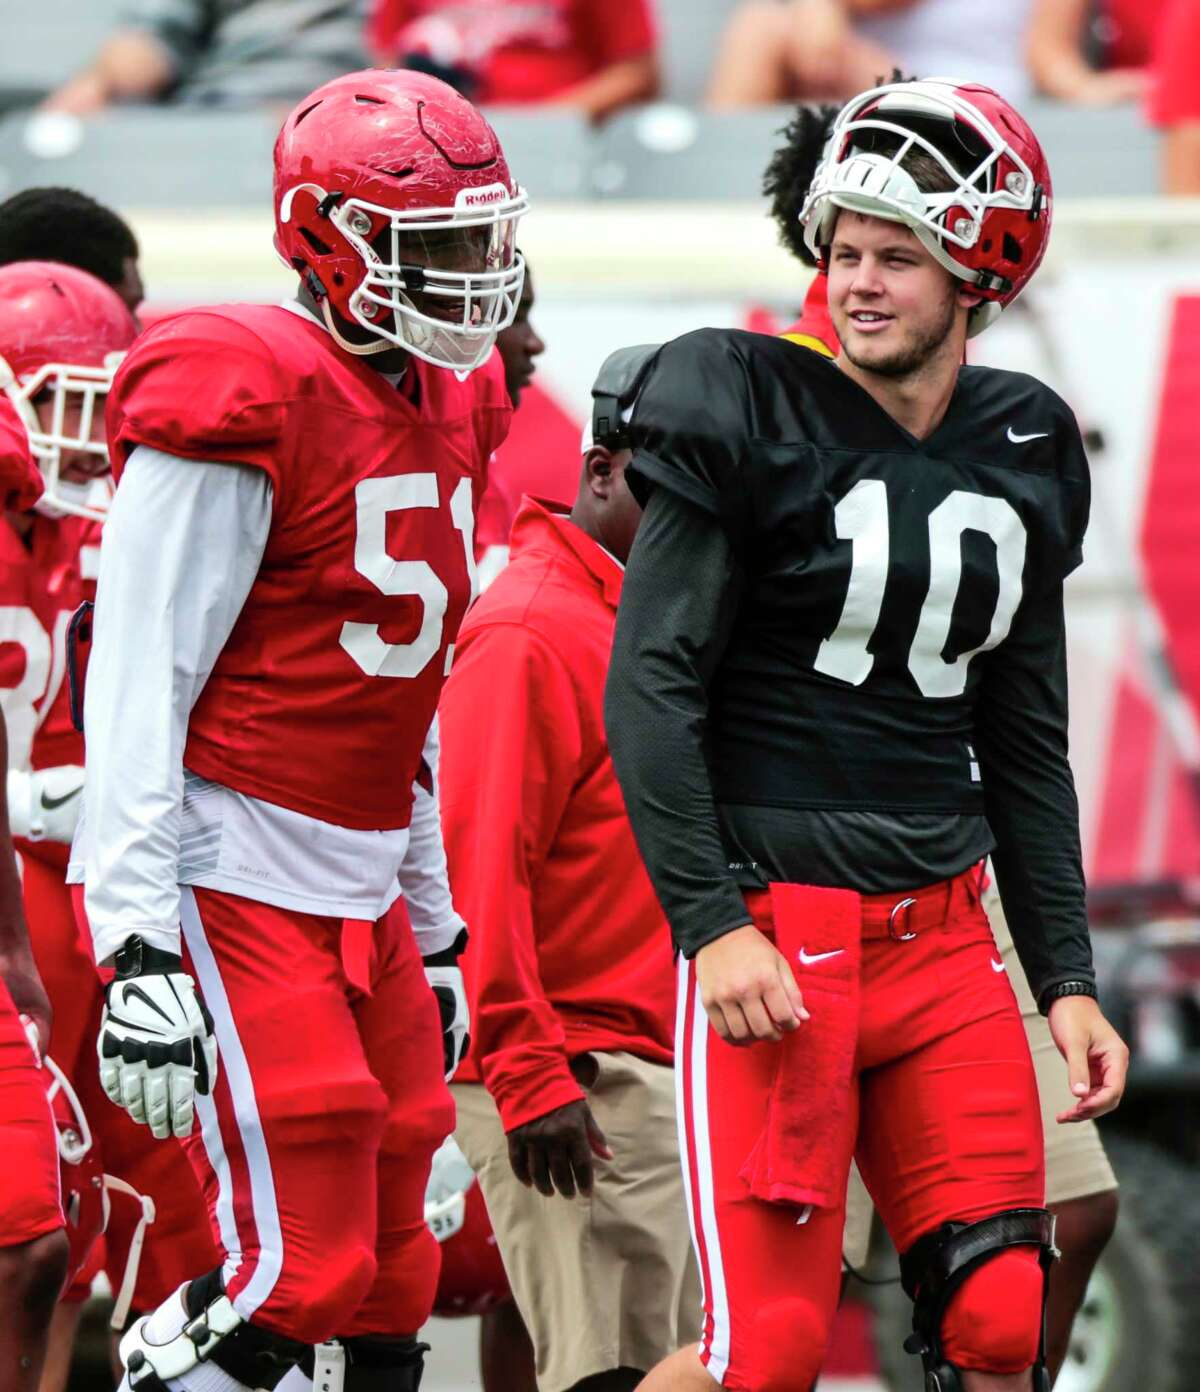 Houston offensive lineman Na'Ty Rodgers (51) walks up the sidelines with quarterback Kyle Allen (10) on the sidelines during the University of Houston Red-White Game at TDECU Stadium on Saturday, April 15, 2017, in Houston.